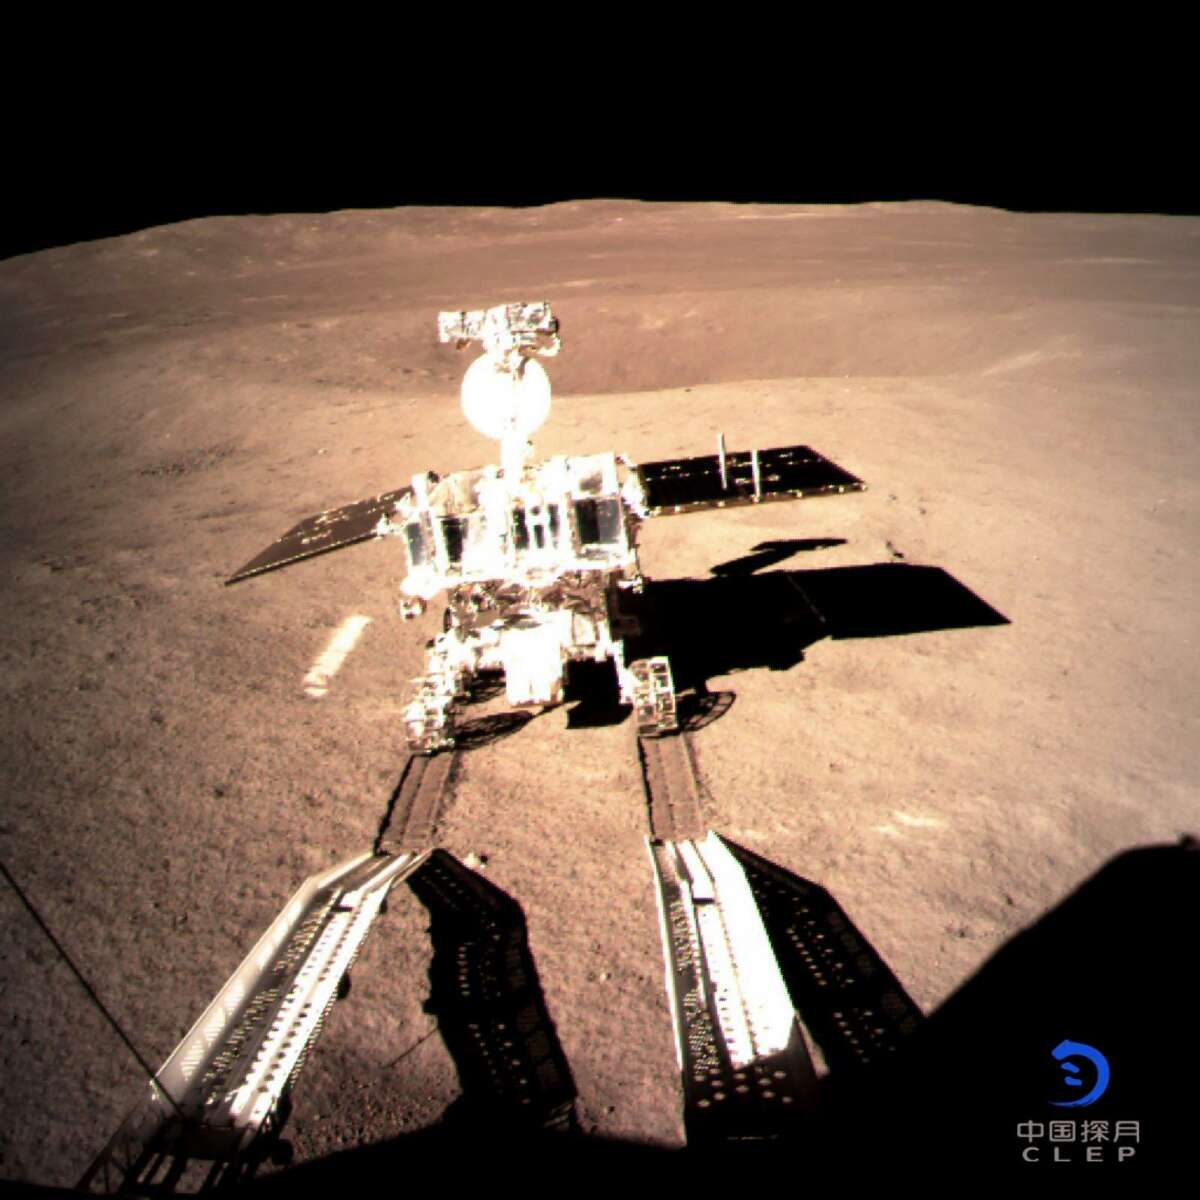 """This picture taken on January 3, 2019 and received on January 4 from the China National Space Administration (CNSA) via CNS shows a robotic lunar rover on the """"dark side"""" of the moon. - A Chinese lunar rover landed on the far side of the moon on January 3, in a global first that boosts Beijing's ambitions to become a space superpower. (Photo by China National Space Administration (CNSA) via CNS / China National Space Administration (CNSA) via CNS / AFP) / China OUTCHINA NATIONAL SPACE ADMINISTRAT/AFP/Getty Images"""